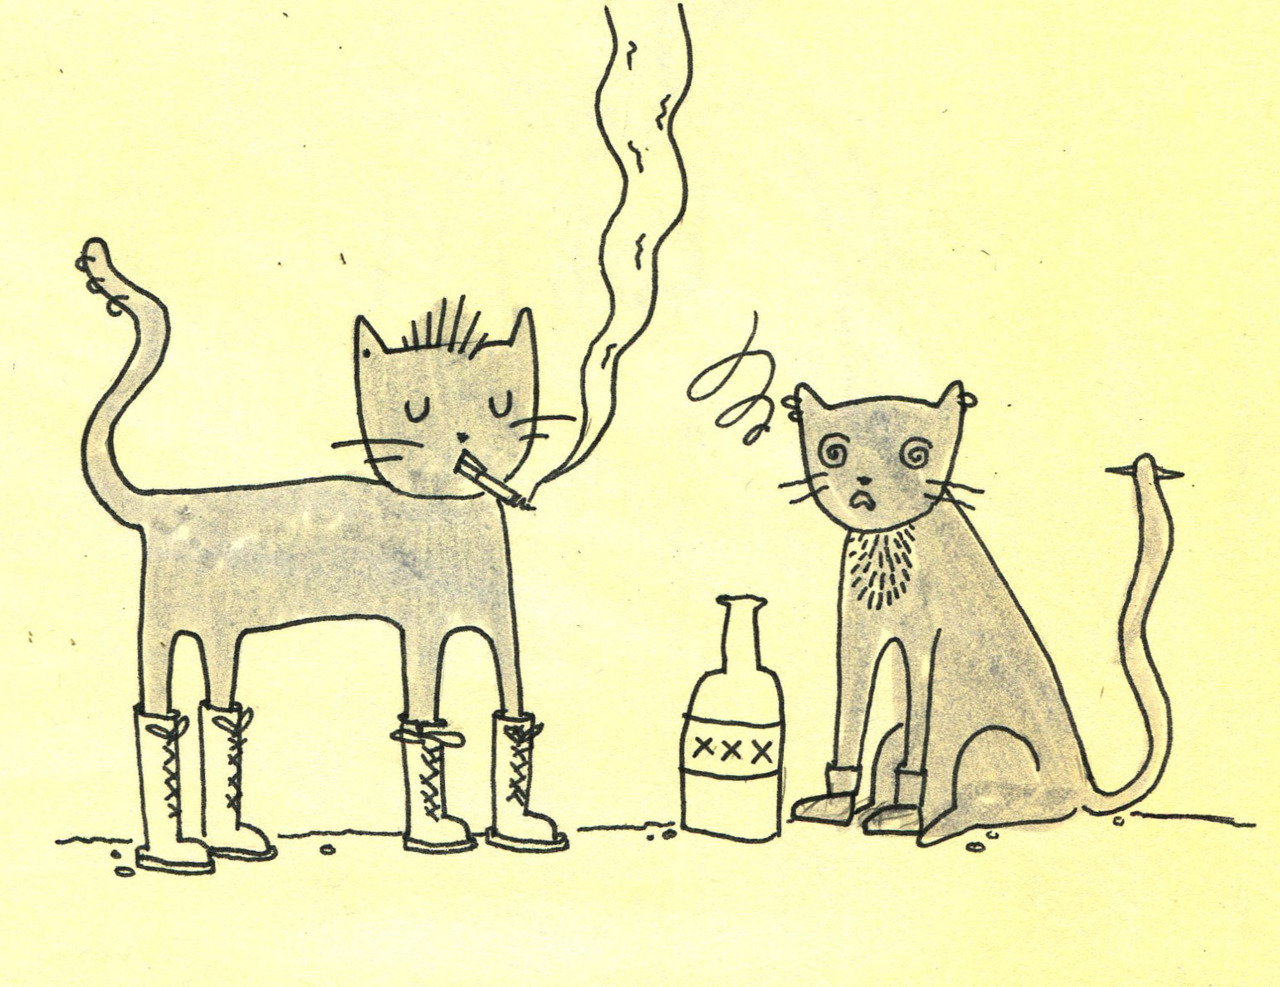 Ian Anderson has been doing some wonderful drawings of teen cats recently and I guess this is fanart of that? These two are delinquant cats, delinqcats? I don't know, I should probably go to bed.